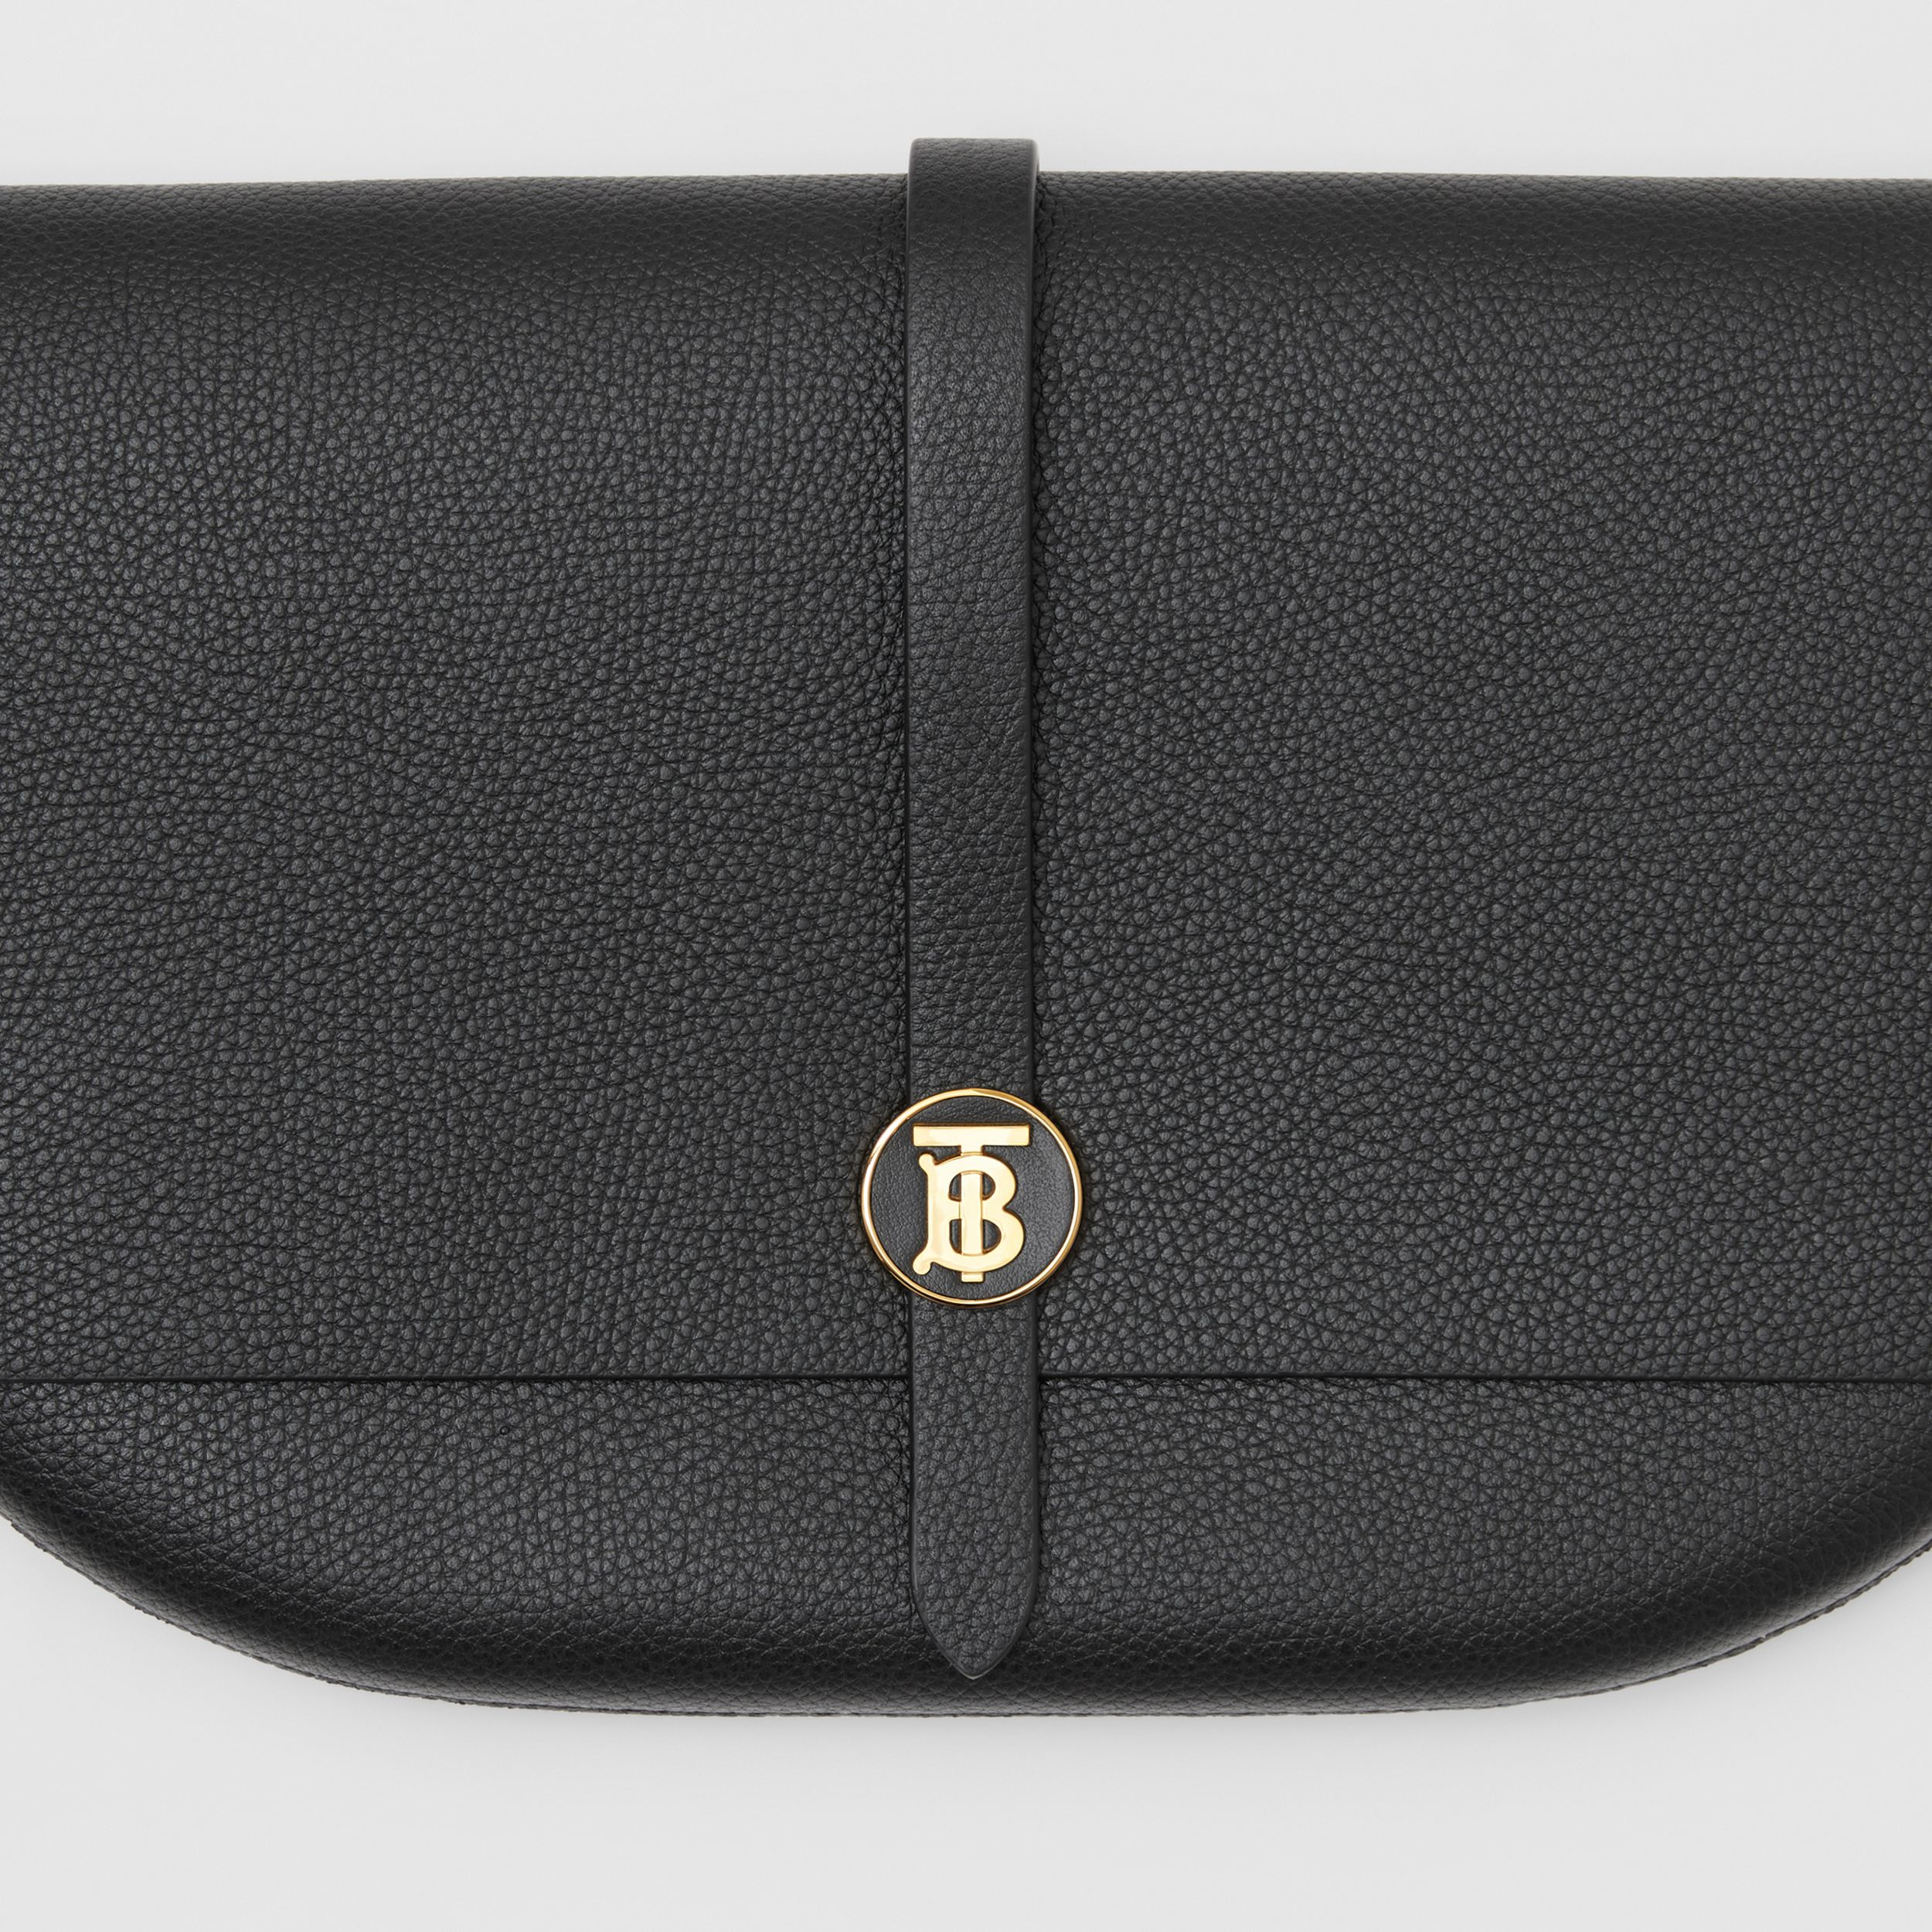 Grainy Leather Anne Clutch in Black - Women | Burberry - 2